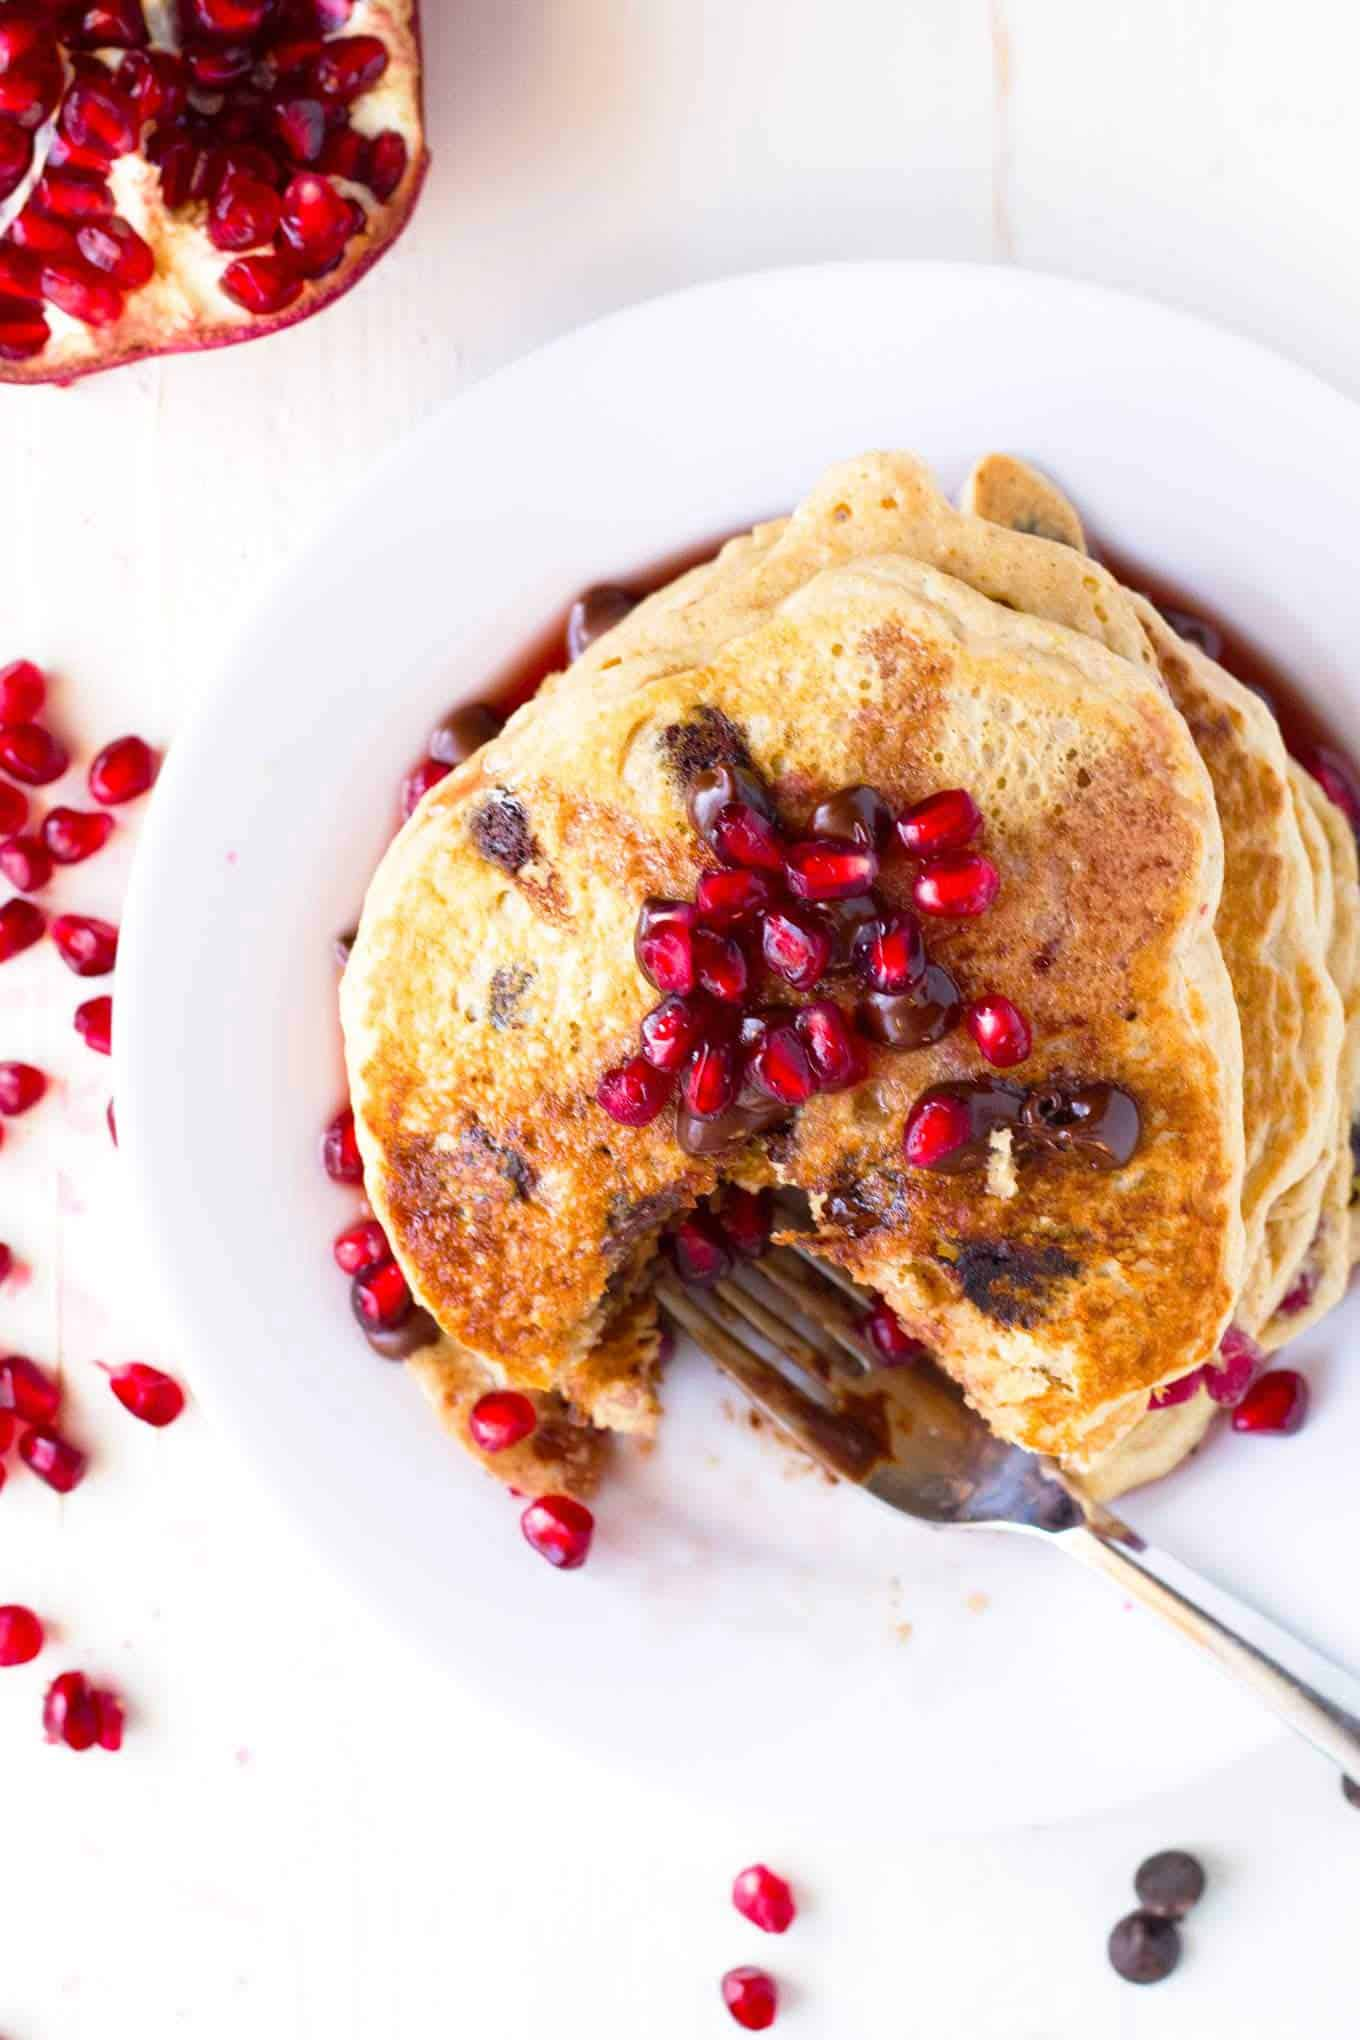 Vegan pomegranate pancakes + 15 Farmers market recipes to make in December! Delicious, autumn, winter, and holiday recipes made with fresh, seasonal produce from your local farmers market or CSA bin. Eat local!